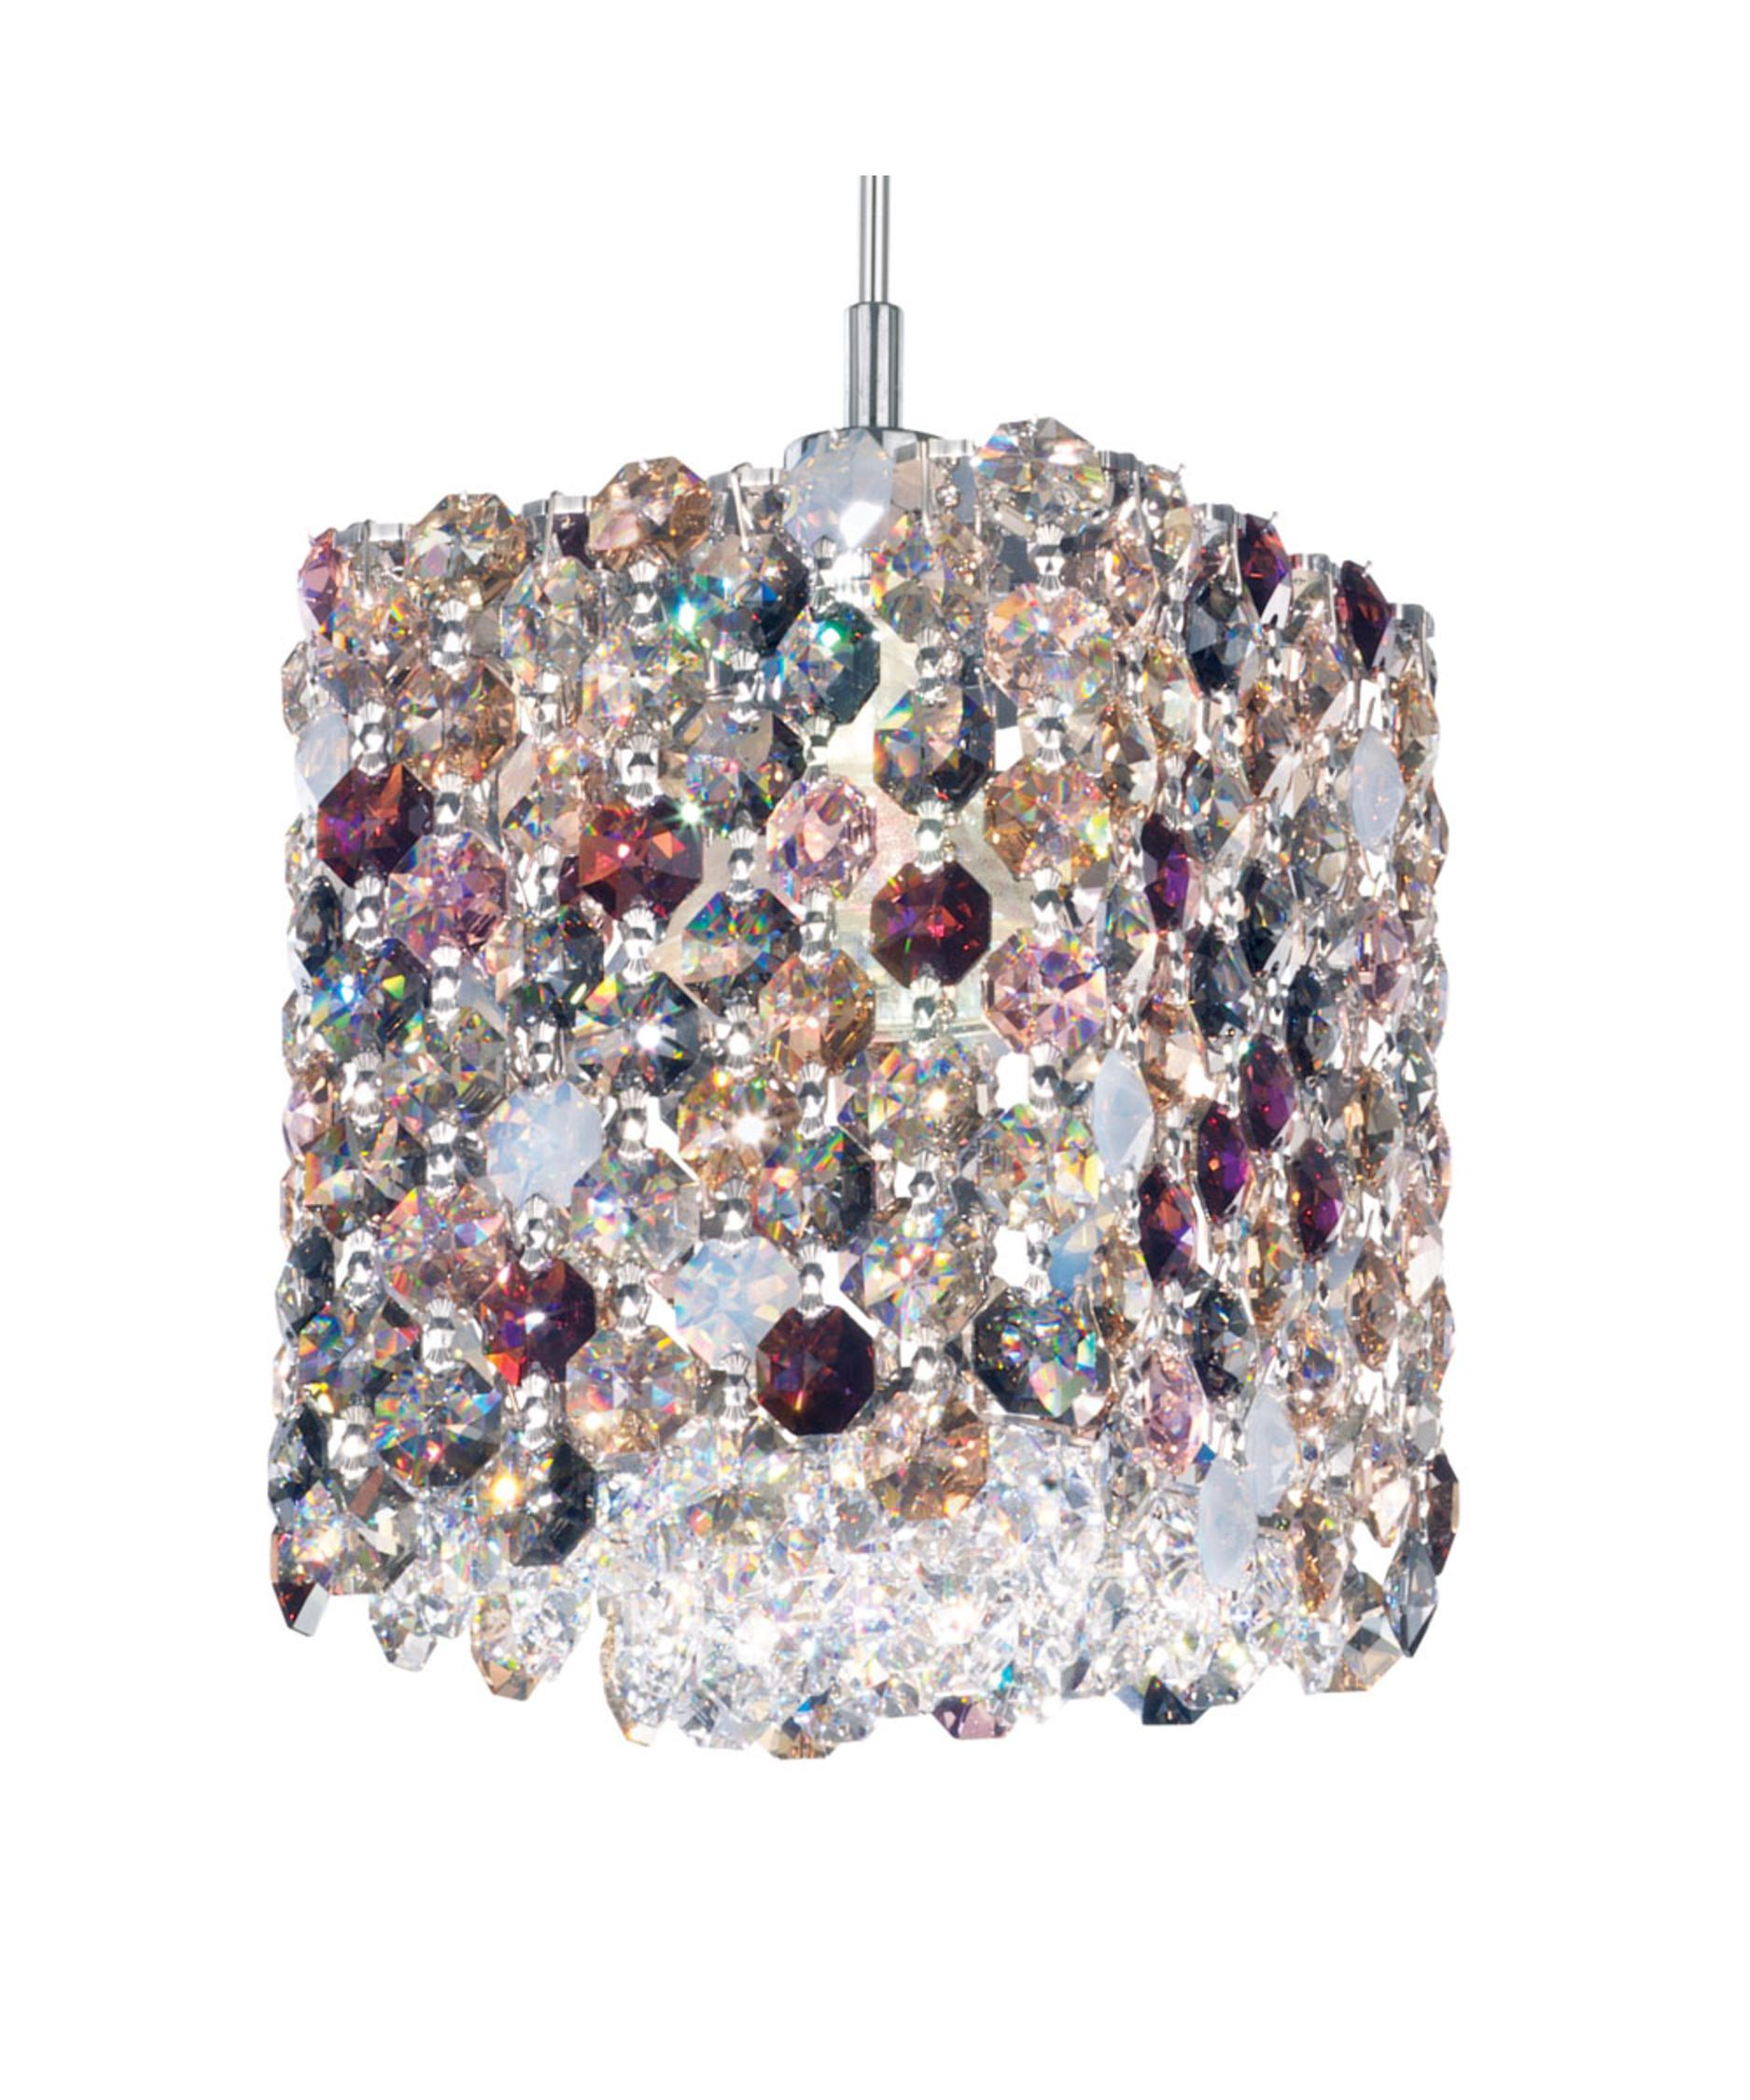 Shown with and Chinchilla Swarovski Elements crystal